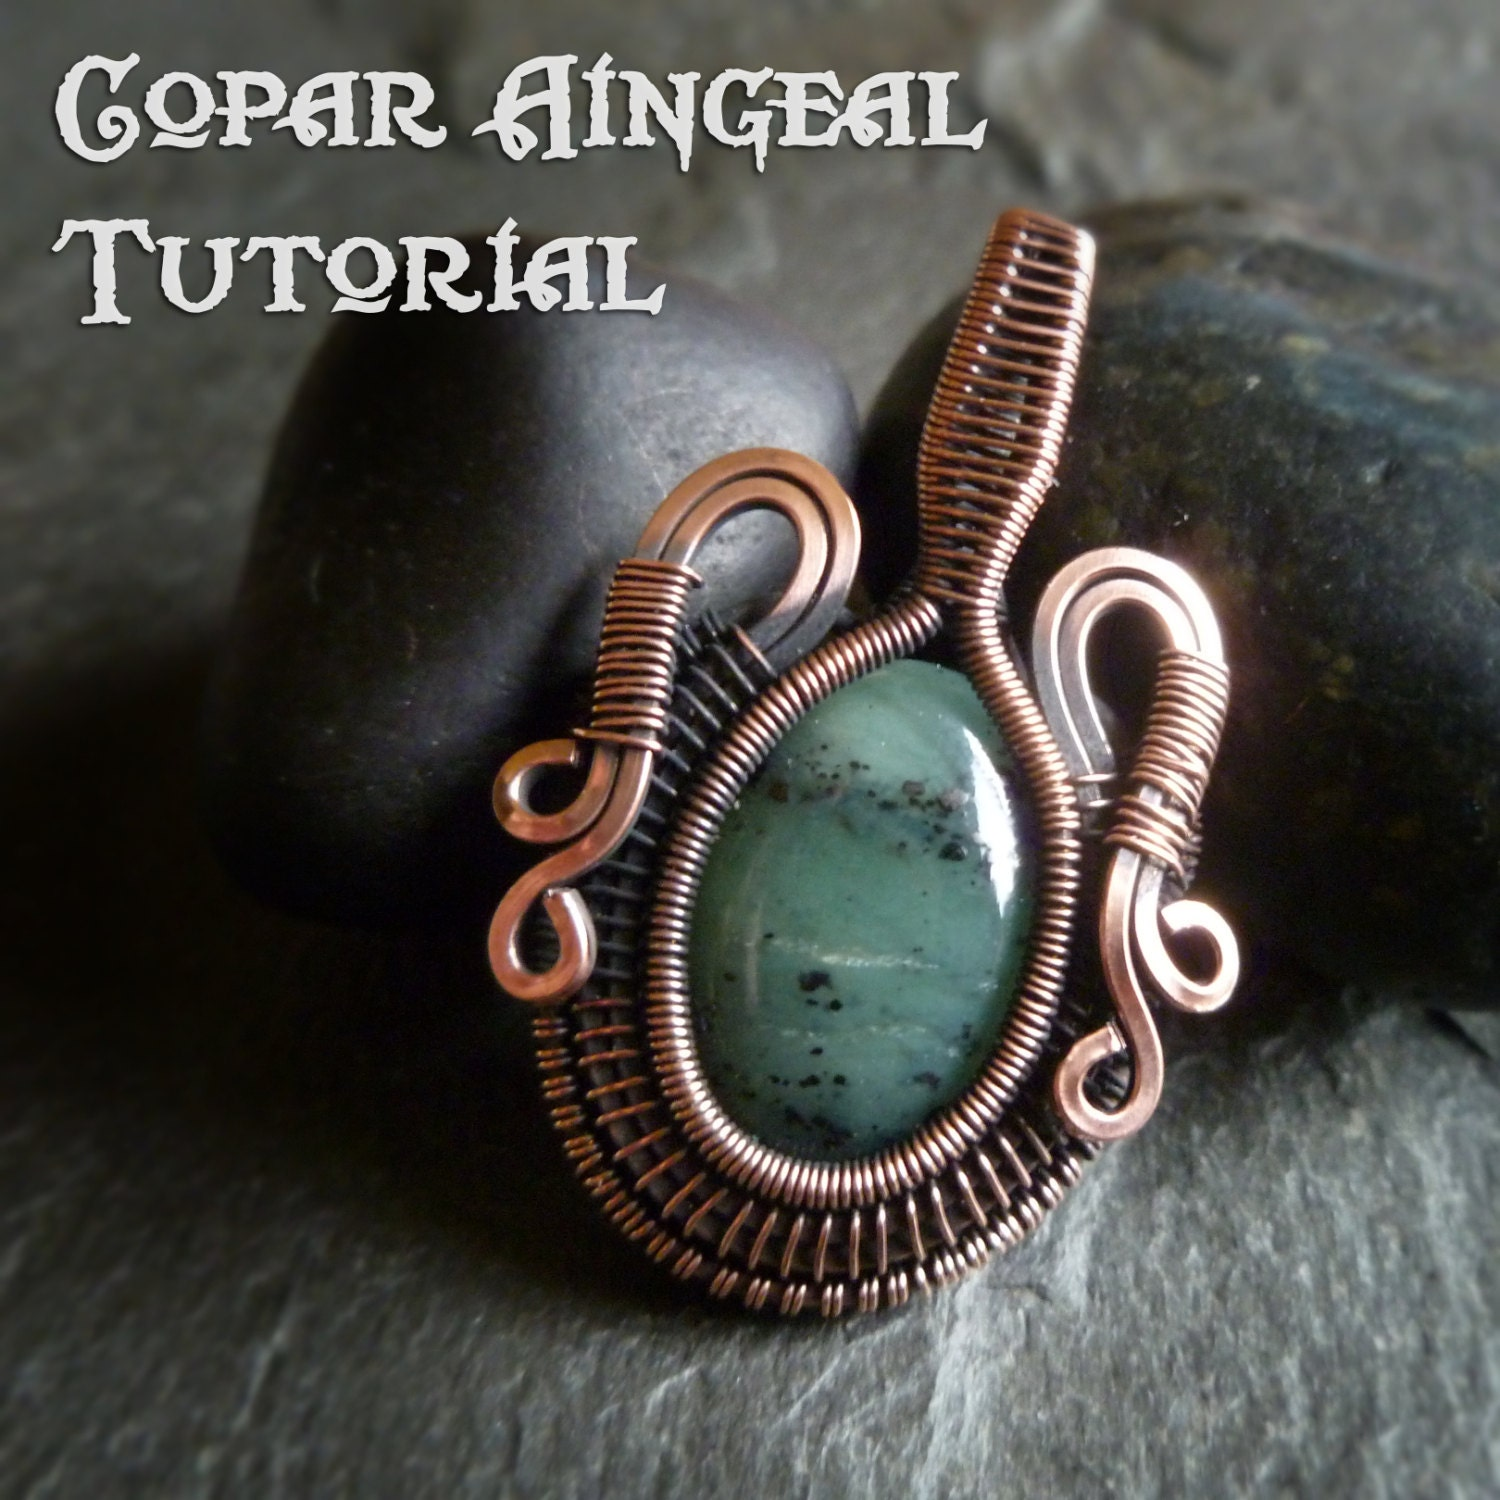 Tutorial temporal vessel wire wrapped pendant lesson for a this is a digital file baditri Images